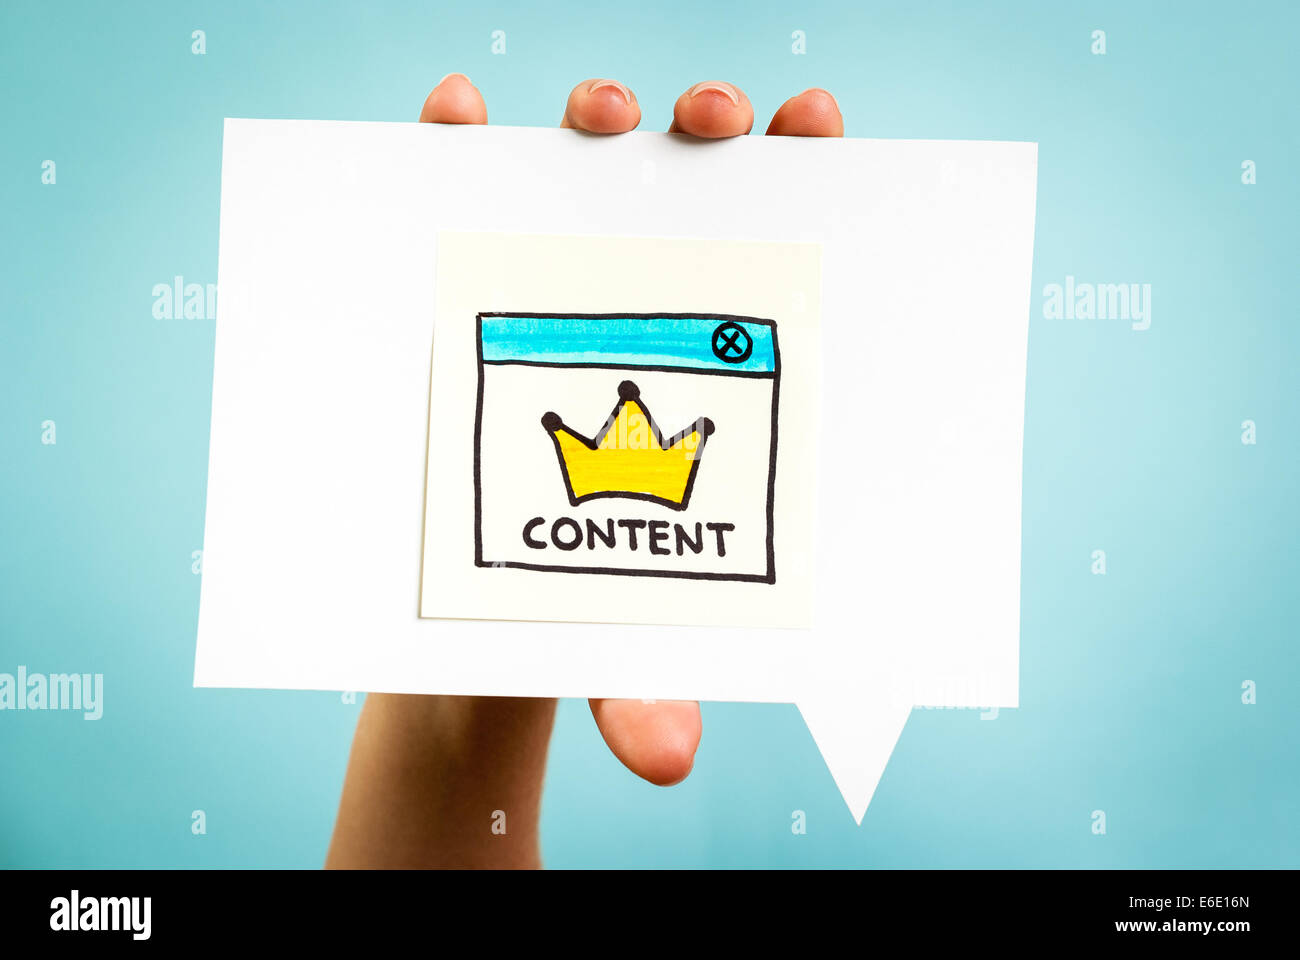 Yellow crown with content word on speech bubble and blue background. Social media concept. - Stock Image